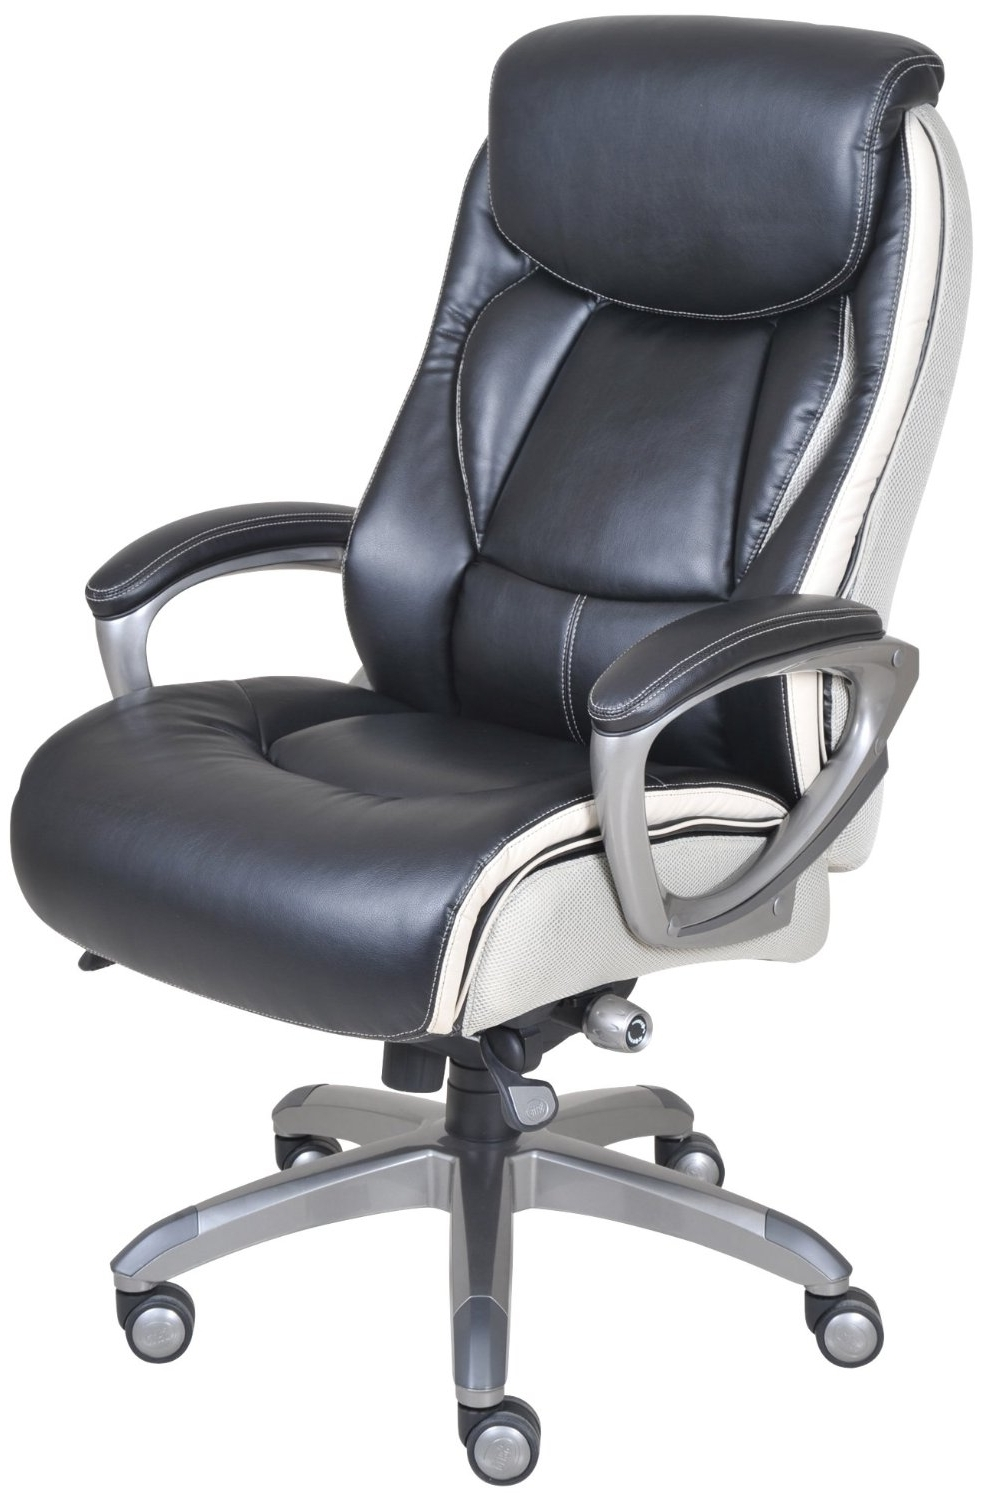 2018 Light Beige Microfiber Executive Office Chairs In Best Executive Chair – Office Chair Hq (View 20 of 20)